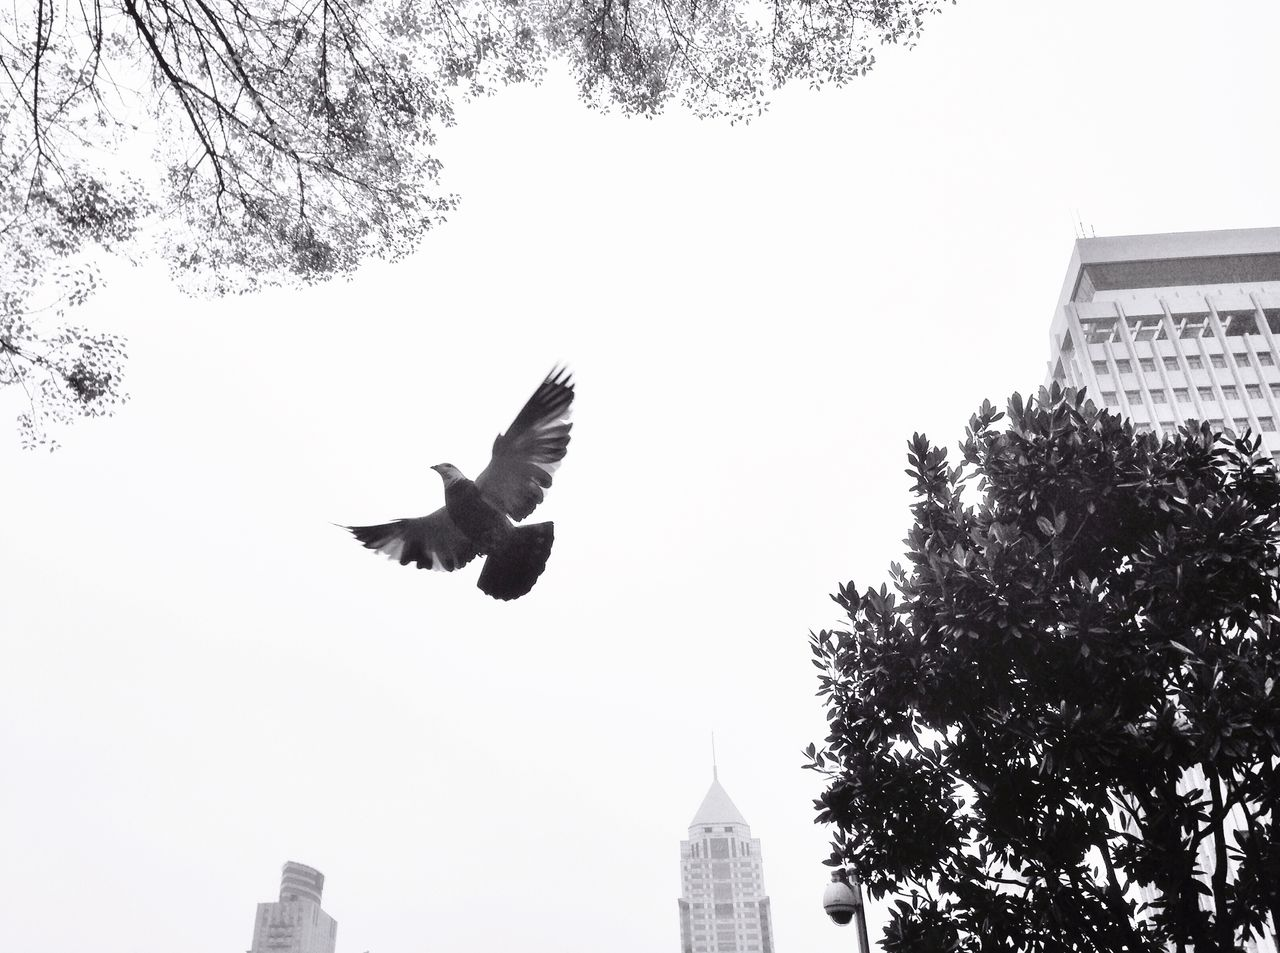 architecture, flying, tree, built structure, building exterior, mid-air, low angle view, clear sky, outdoors, sky, bird, spread wings, jumping, day, full length, no people, energetic, animal themes, city, nature